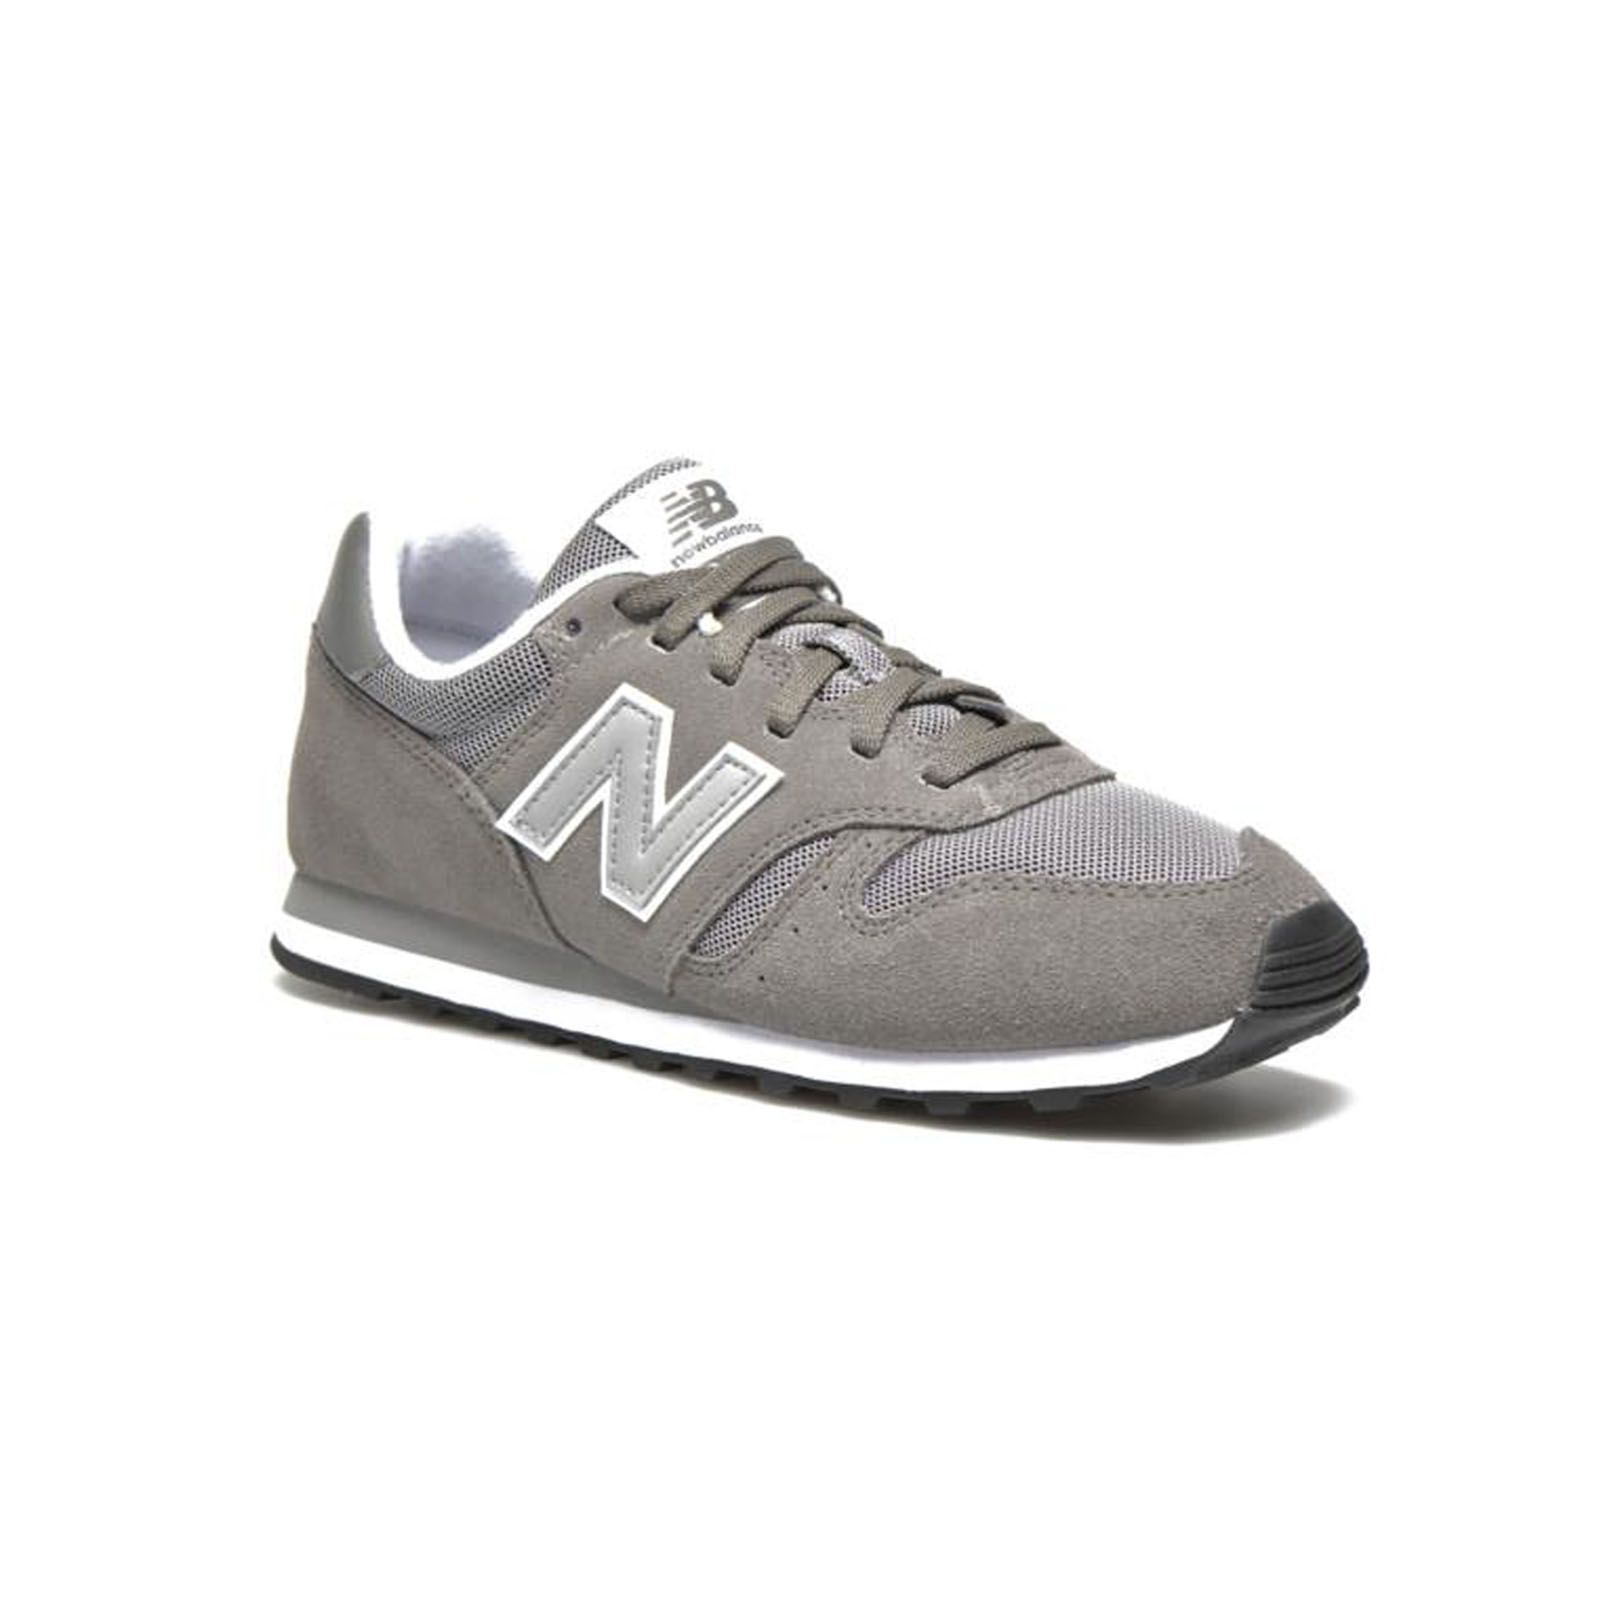 new balance ml373 mma turnschuhe sneakers grau brandalley. Black Bedroom Furniture Sets. Home Design Ideas